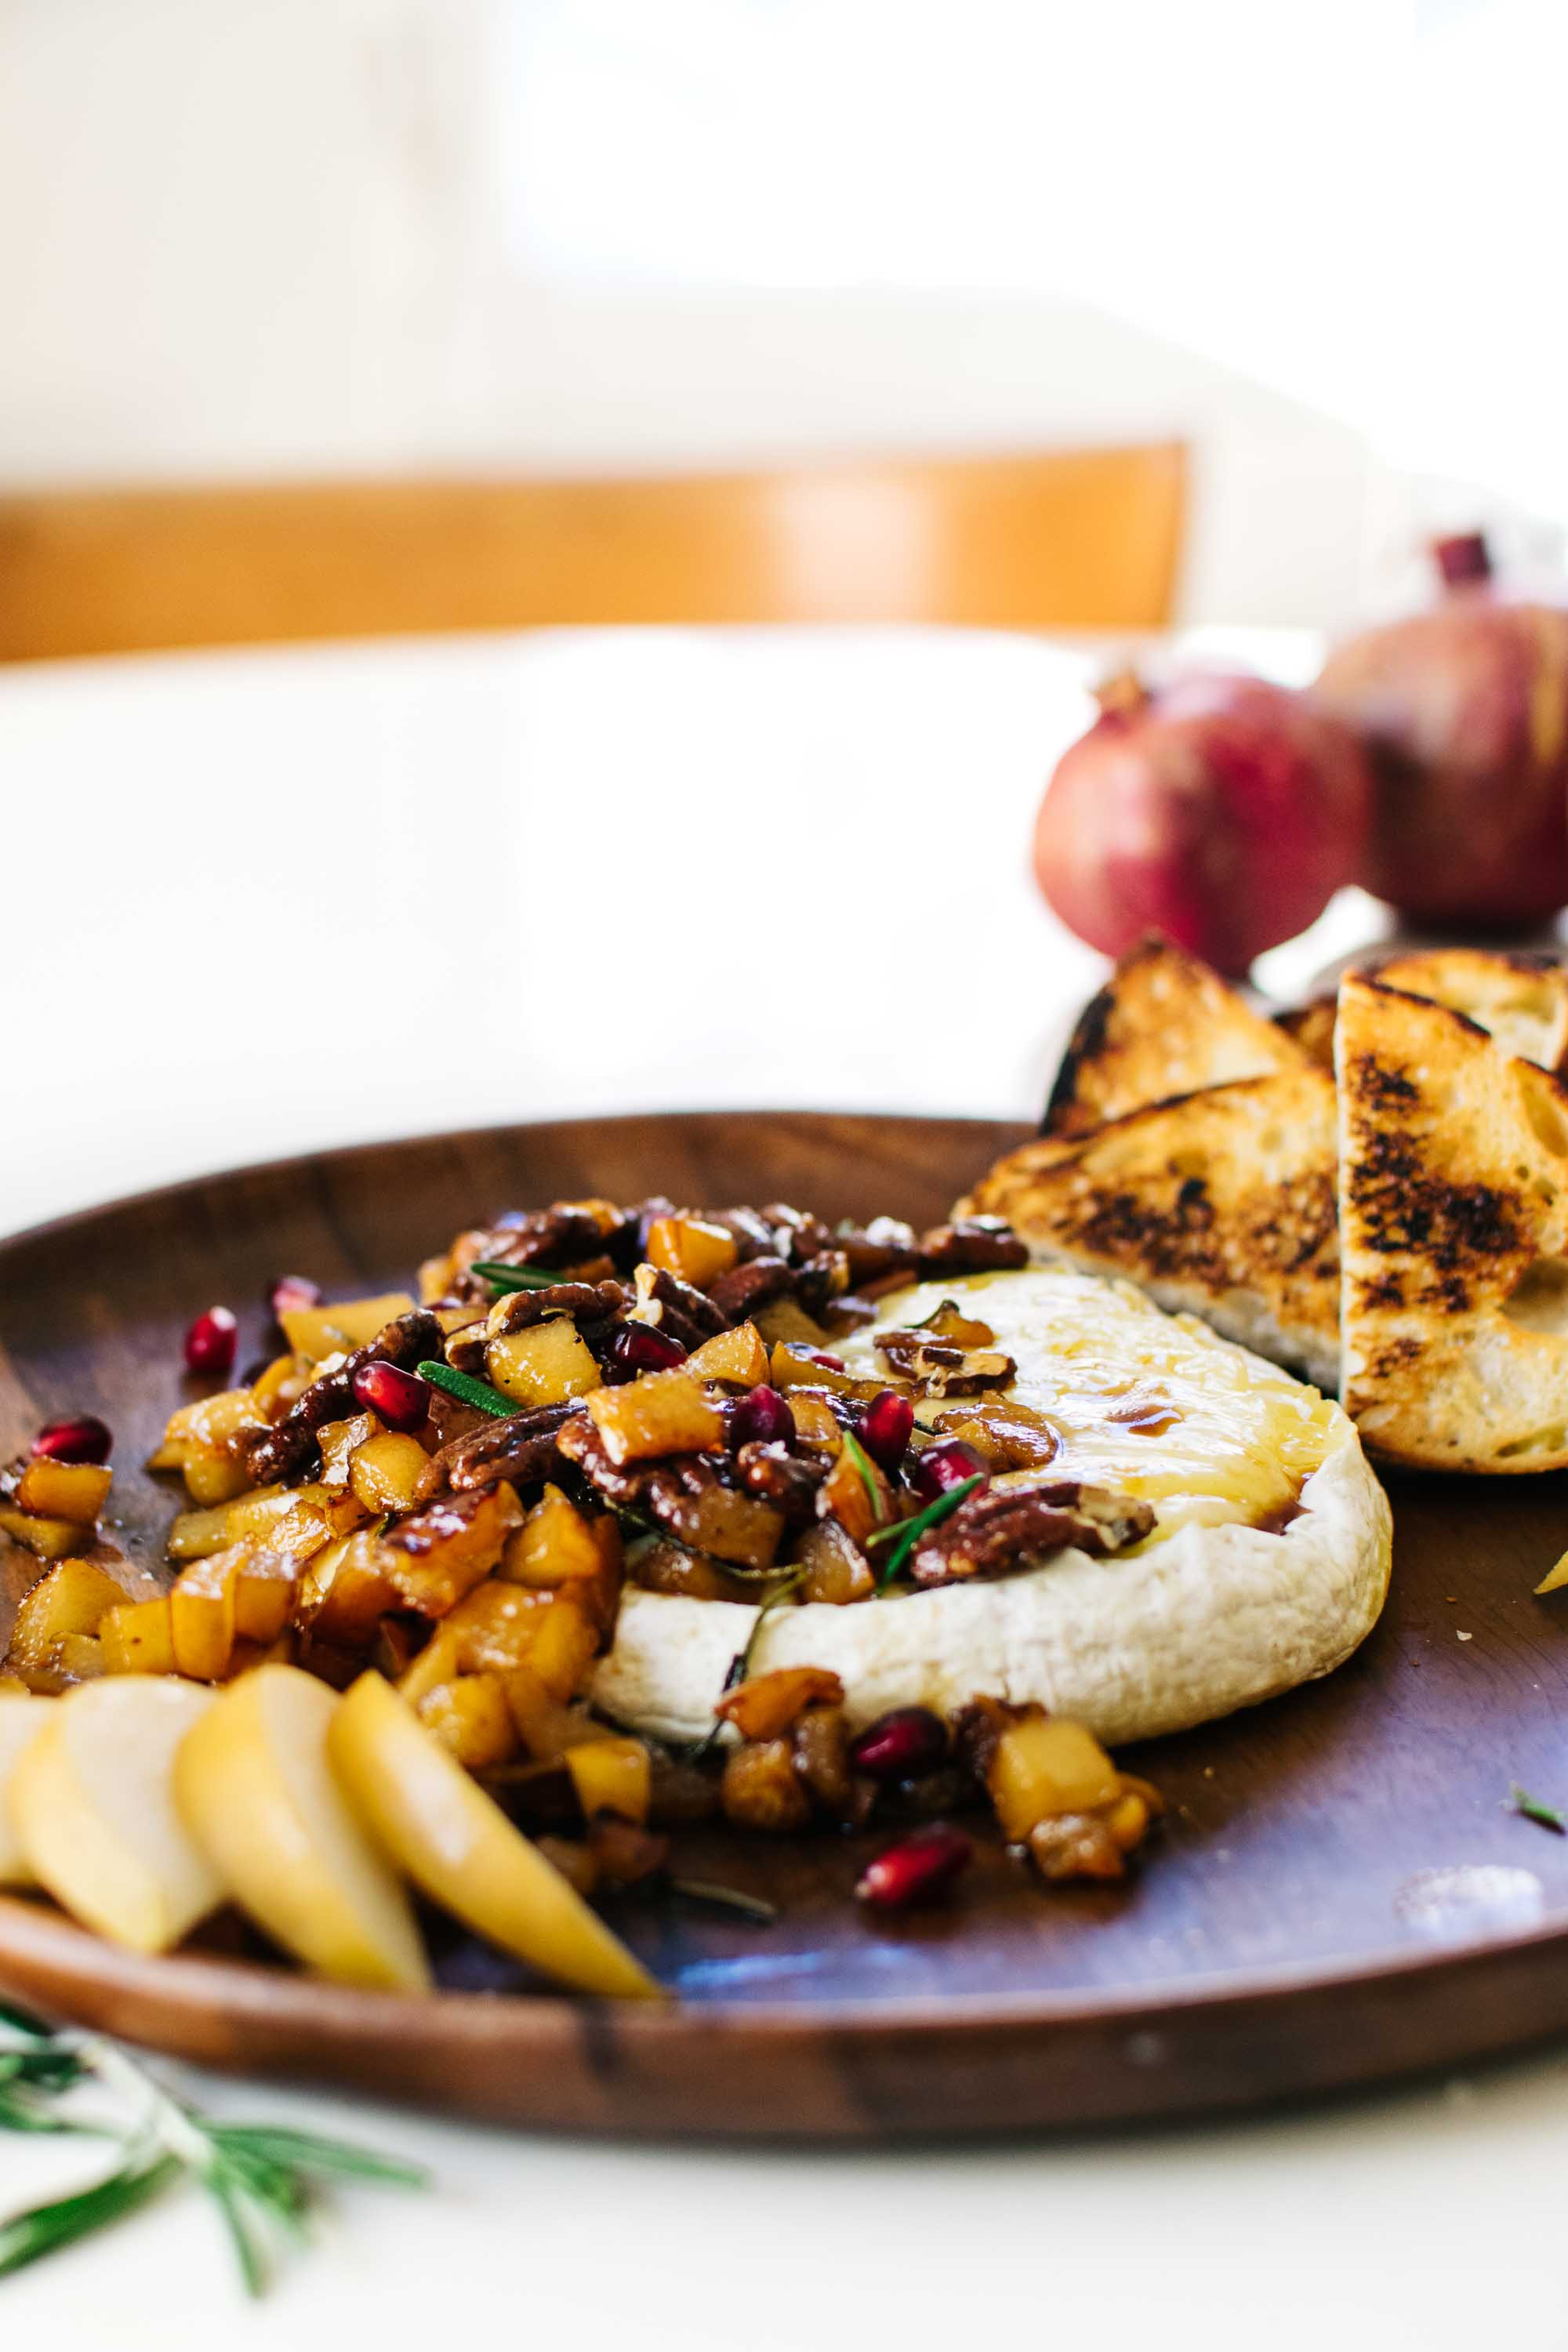 Maple-Rosemary Pear & Pecan Baked Brie